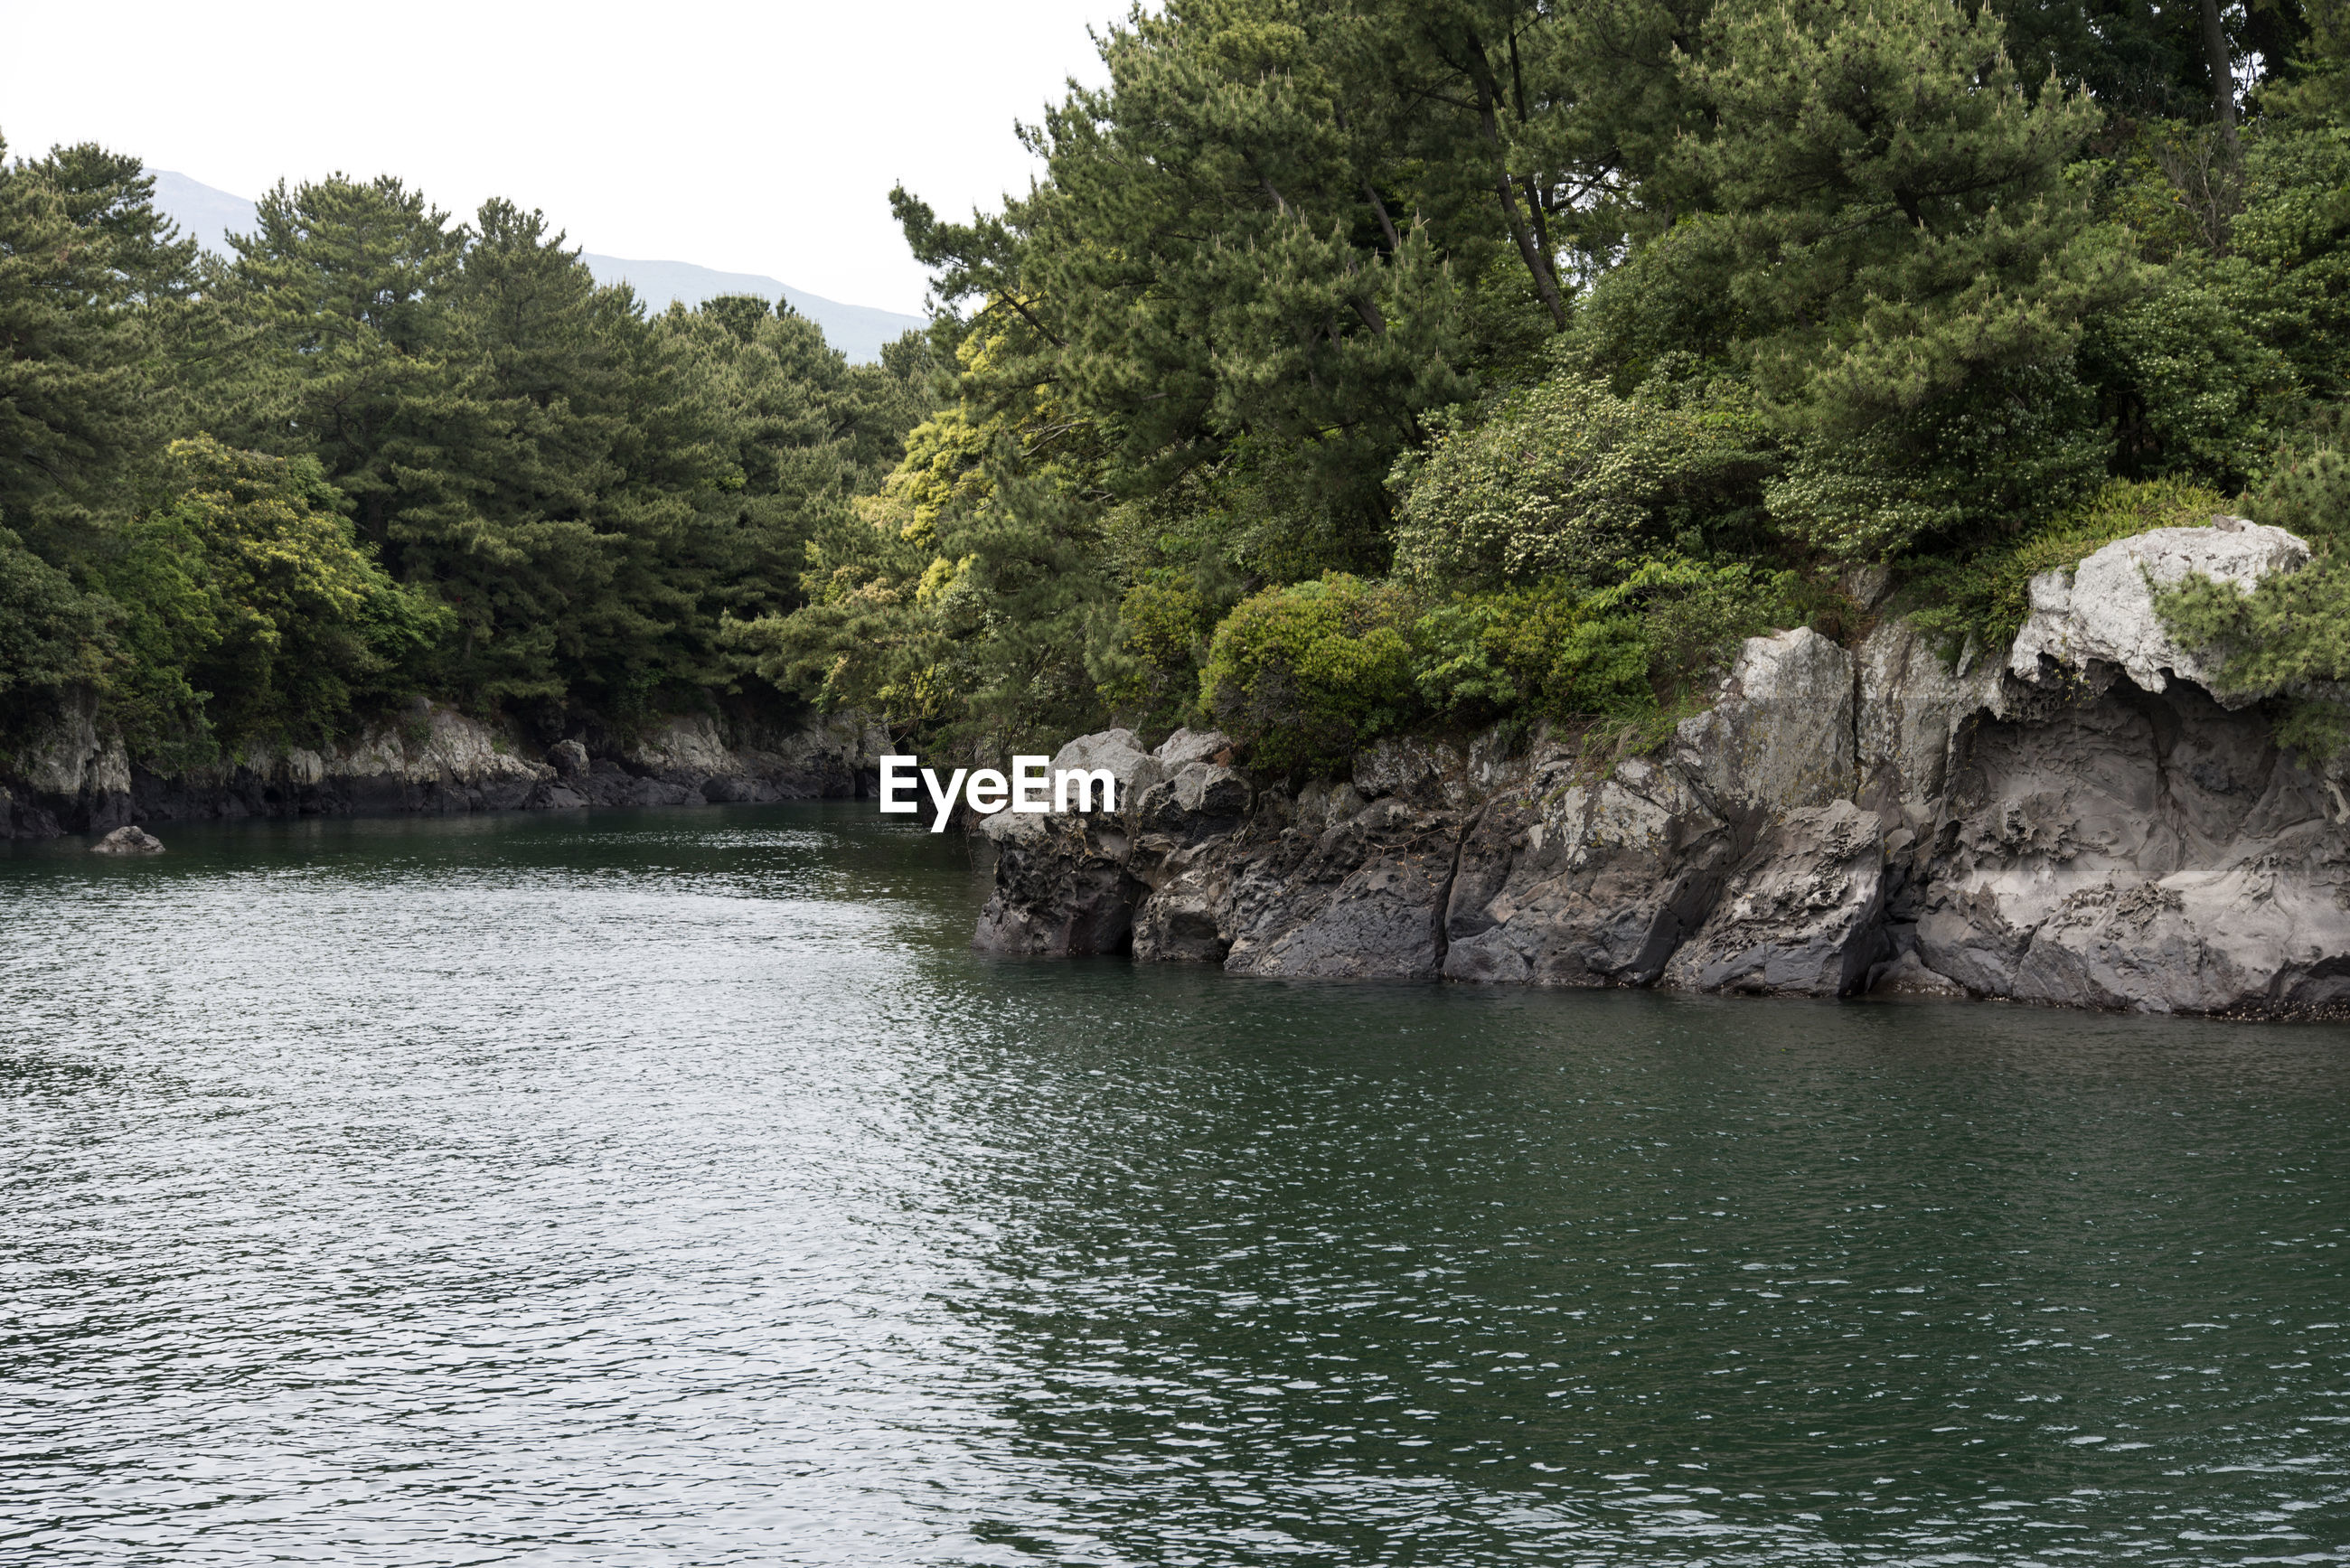 SCENIC VIEW OF RIVER AGAINST TREES